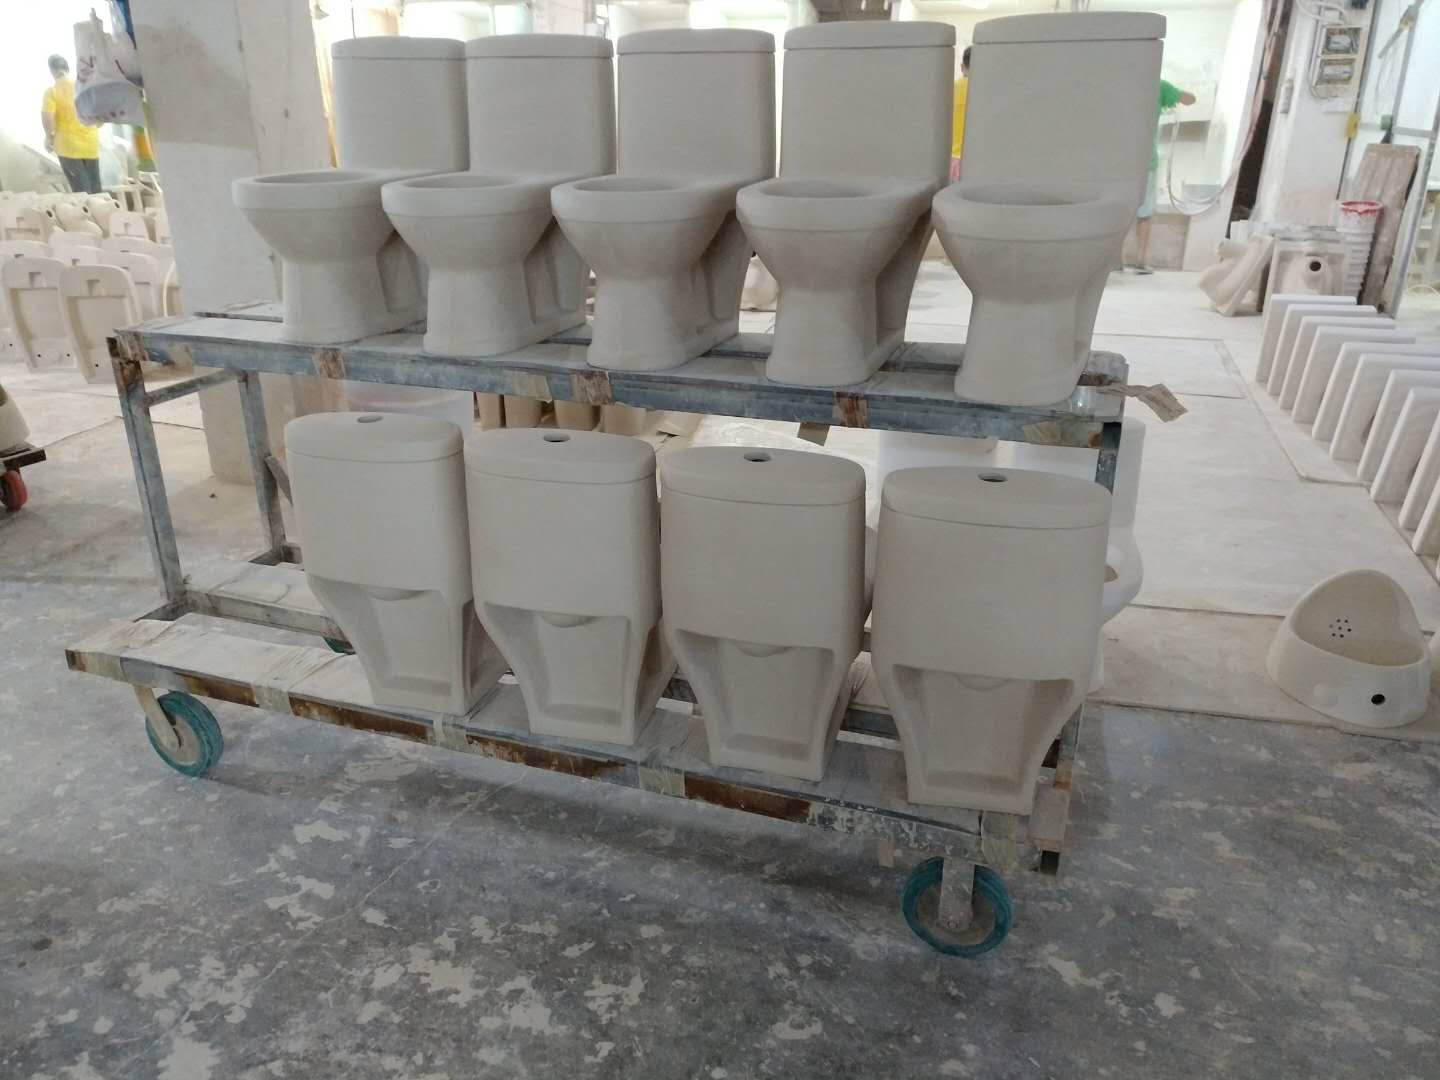 children toilet baby toilets children s toilet step stool children s toilet potty potty toilets for toddlers kids potty